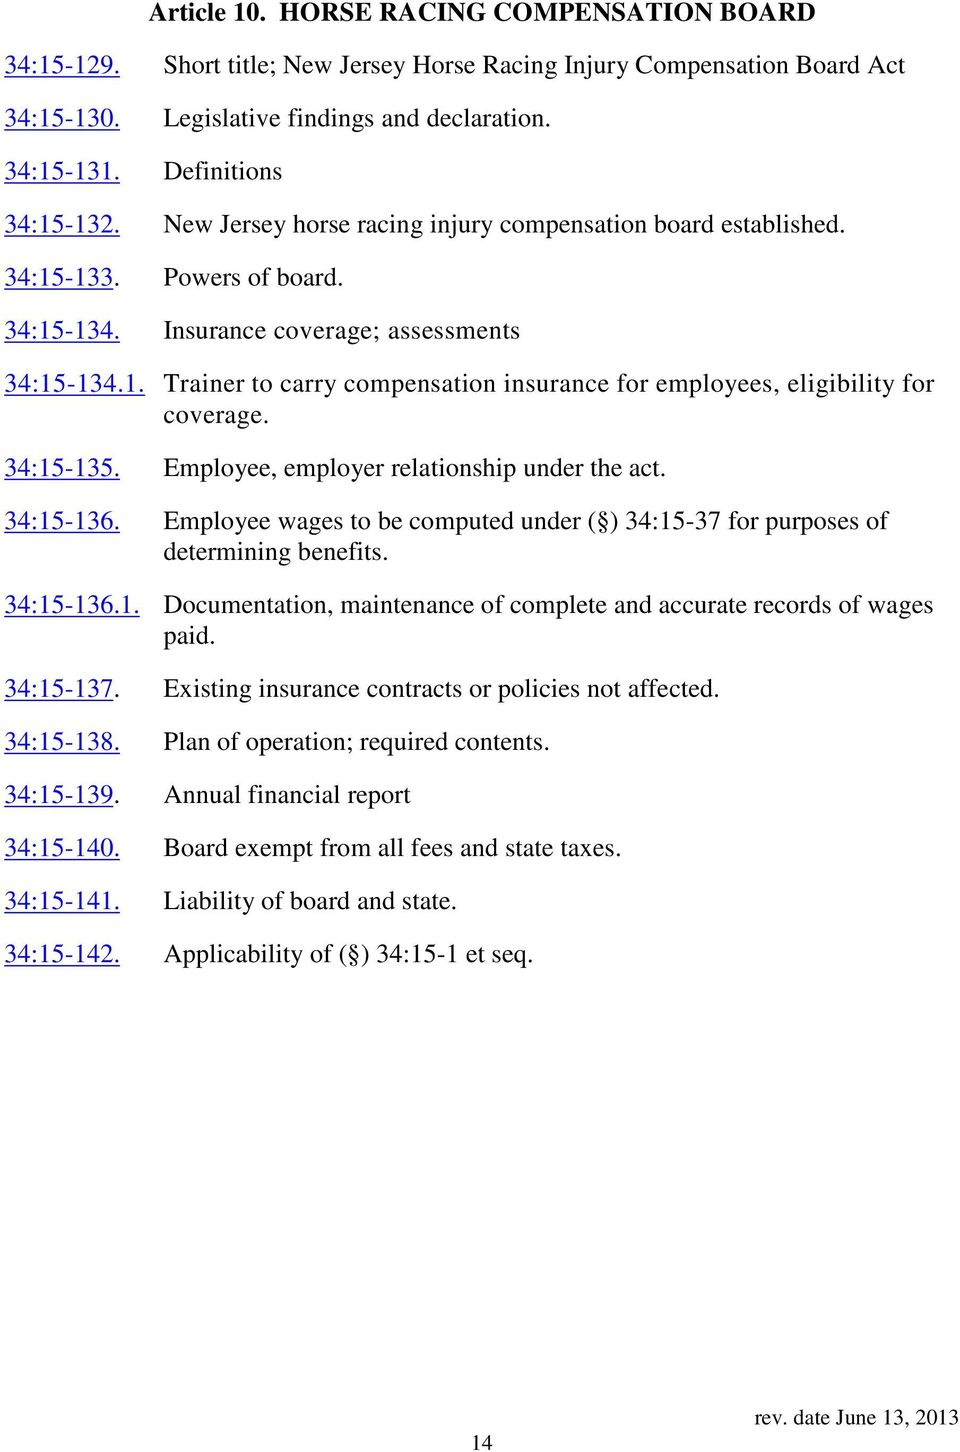 34:15-135. Employee, employer relationship under the act. 34:15-136. Employee wages to be computed under ( ) 34:15-37 for purposes of determining benefits. 34:15-136.1. Documentation, maintenance of complete and accurate records of wages paid.